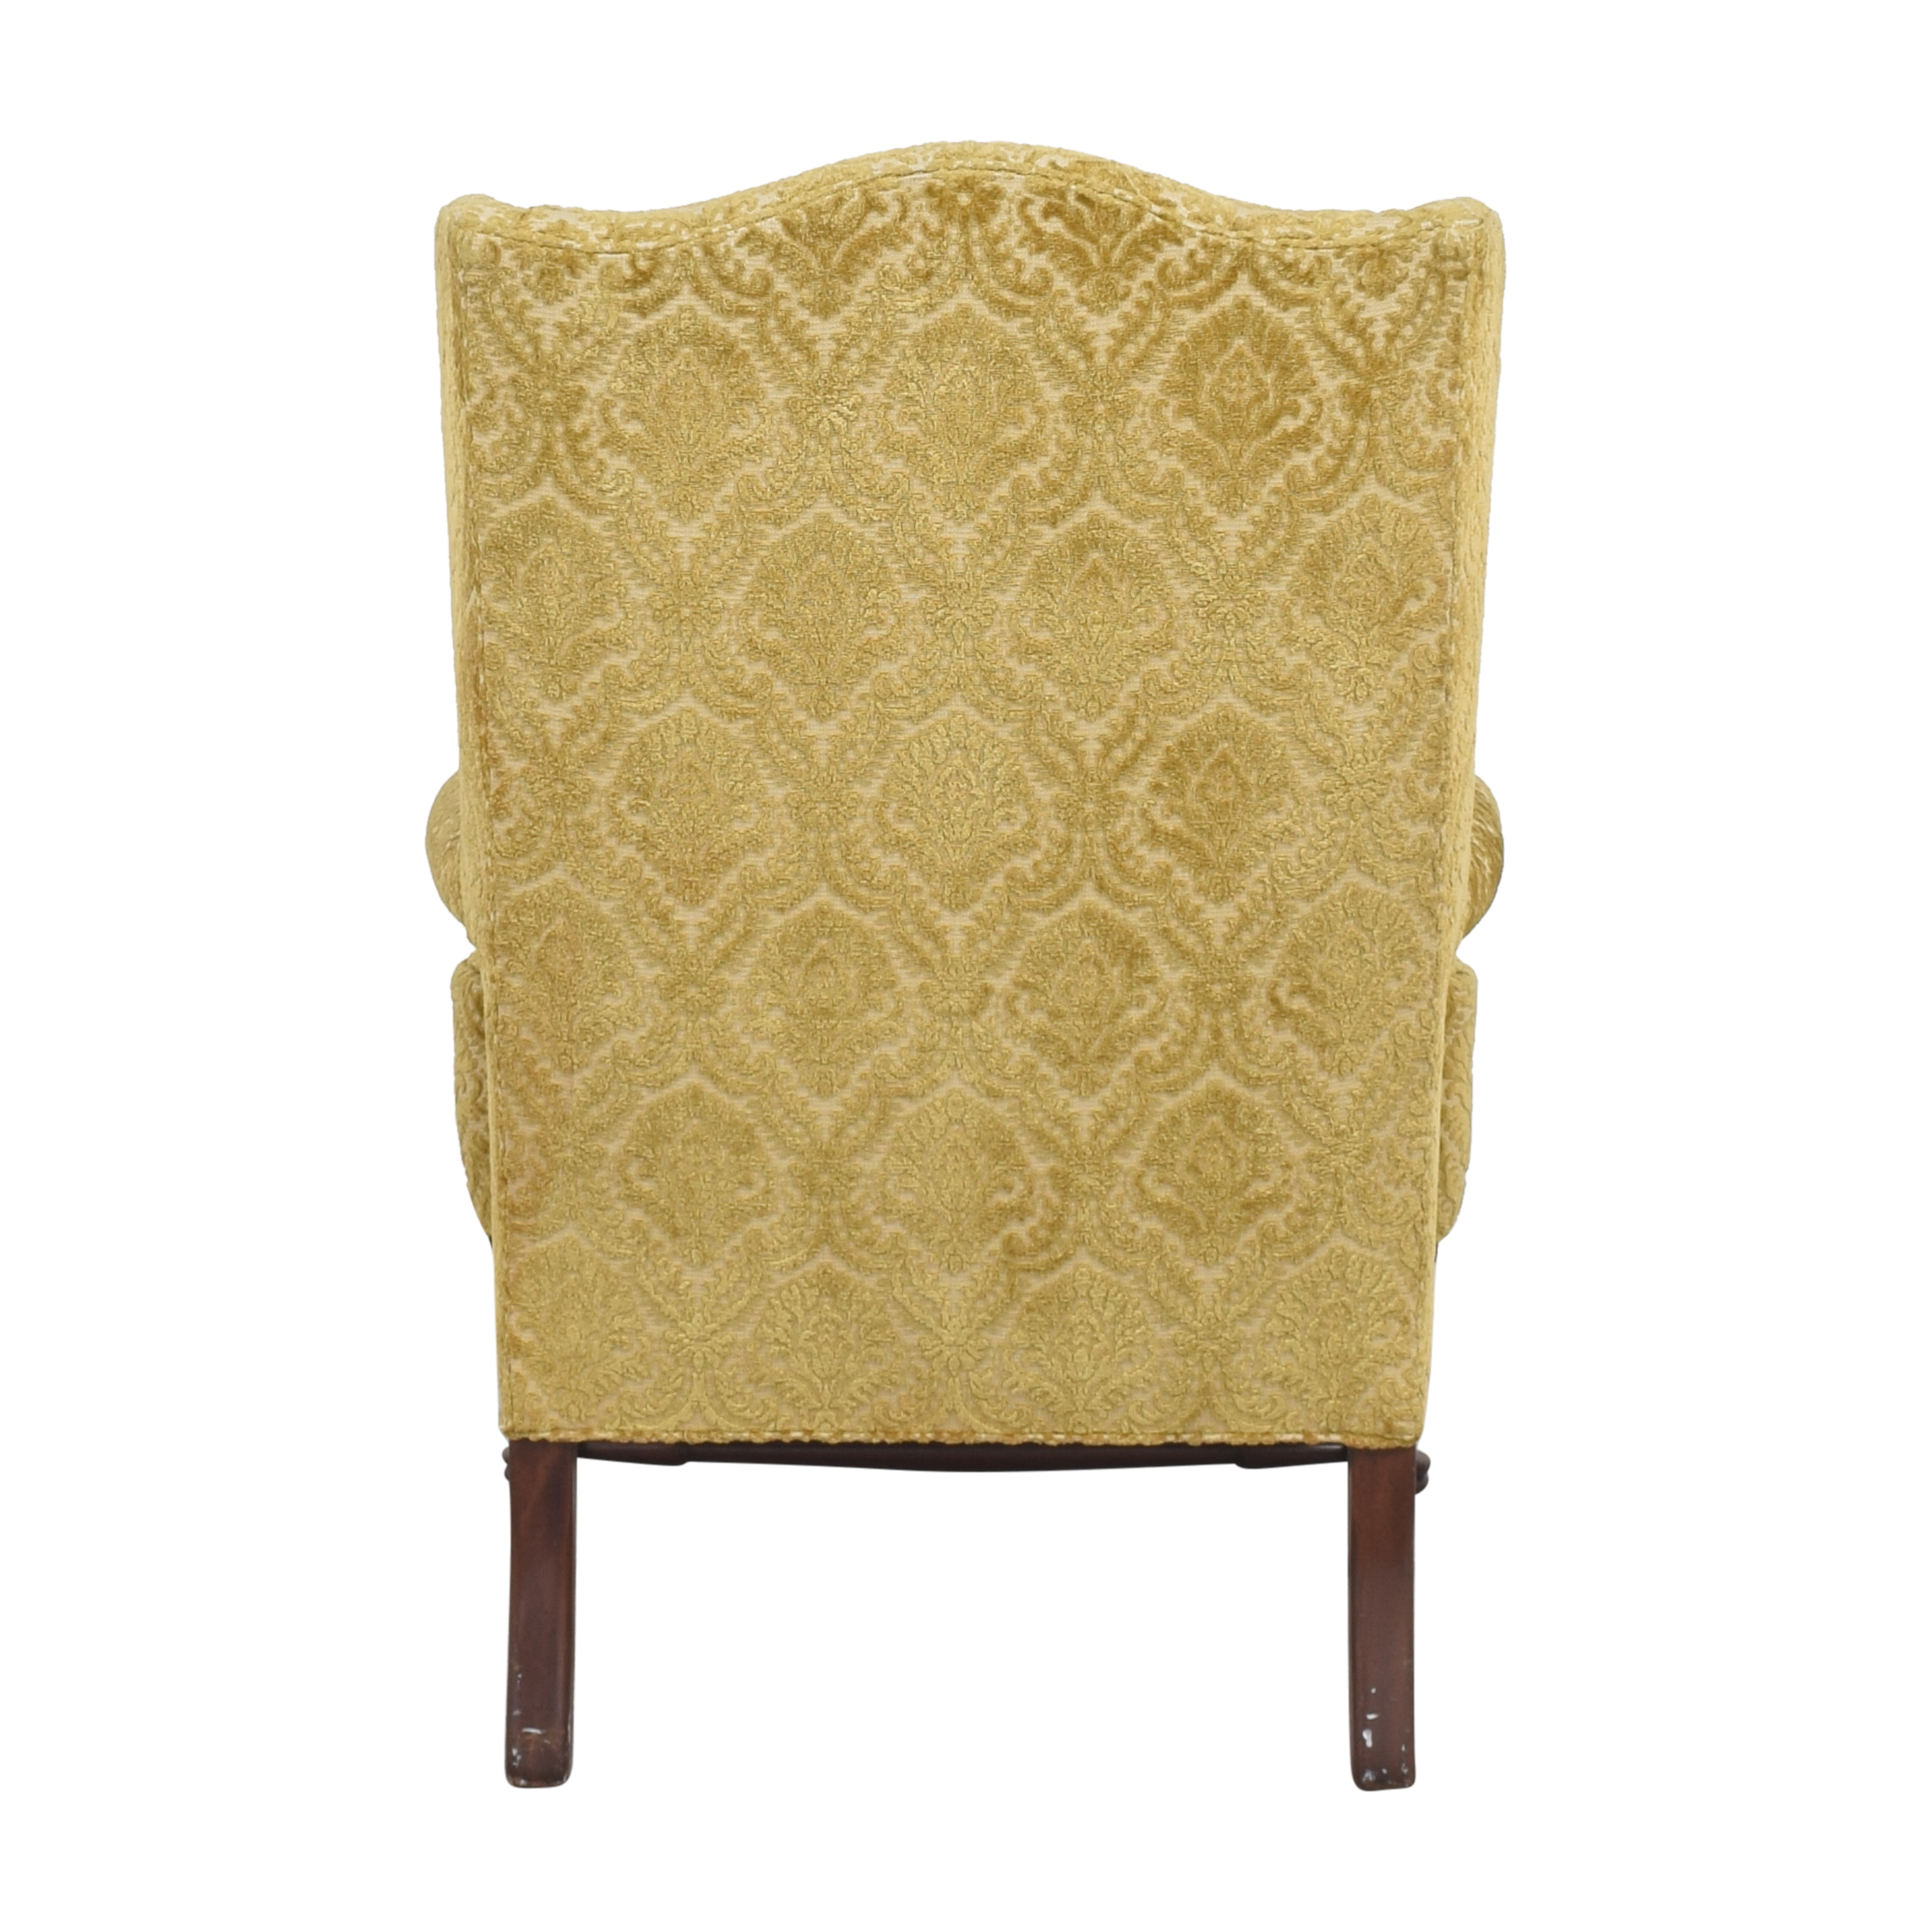 buy Hickory Chair Hickory Chair Queen Anne Wing Back Chair online